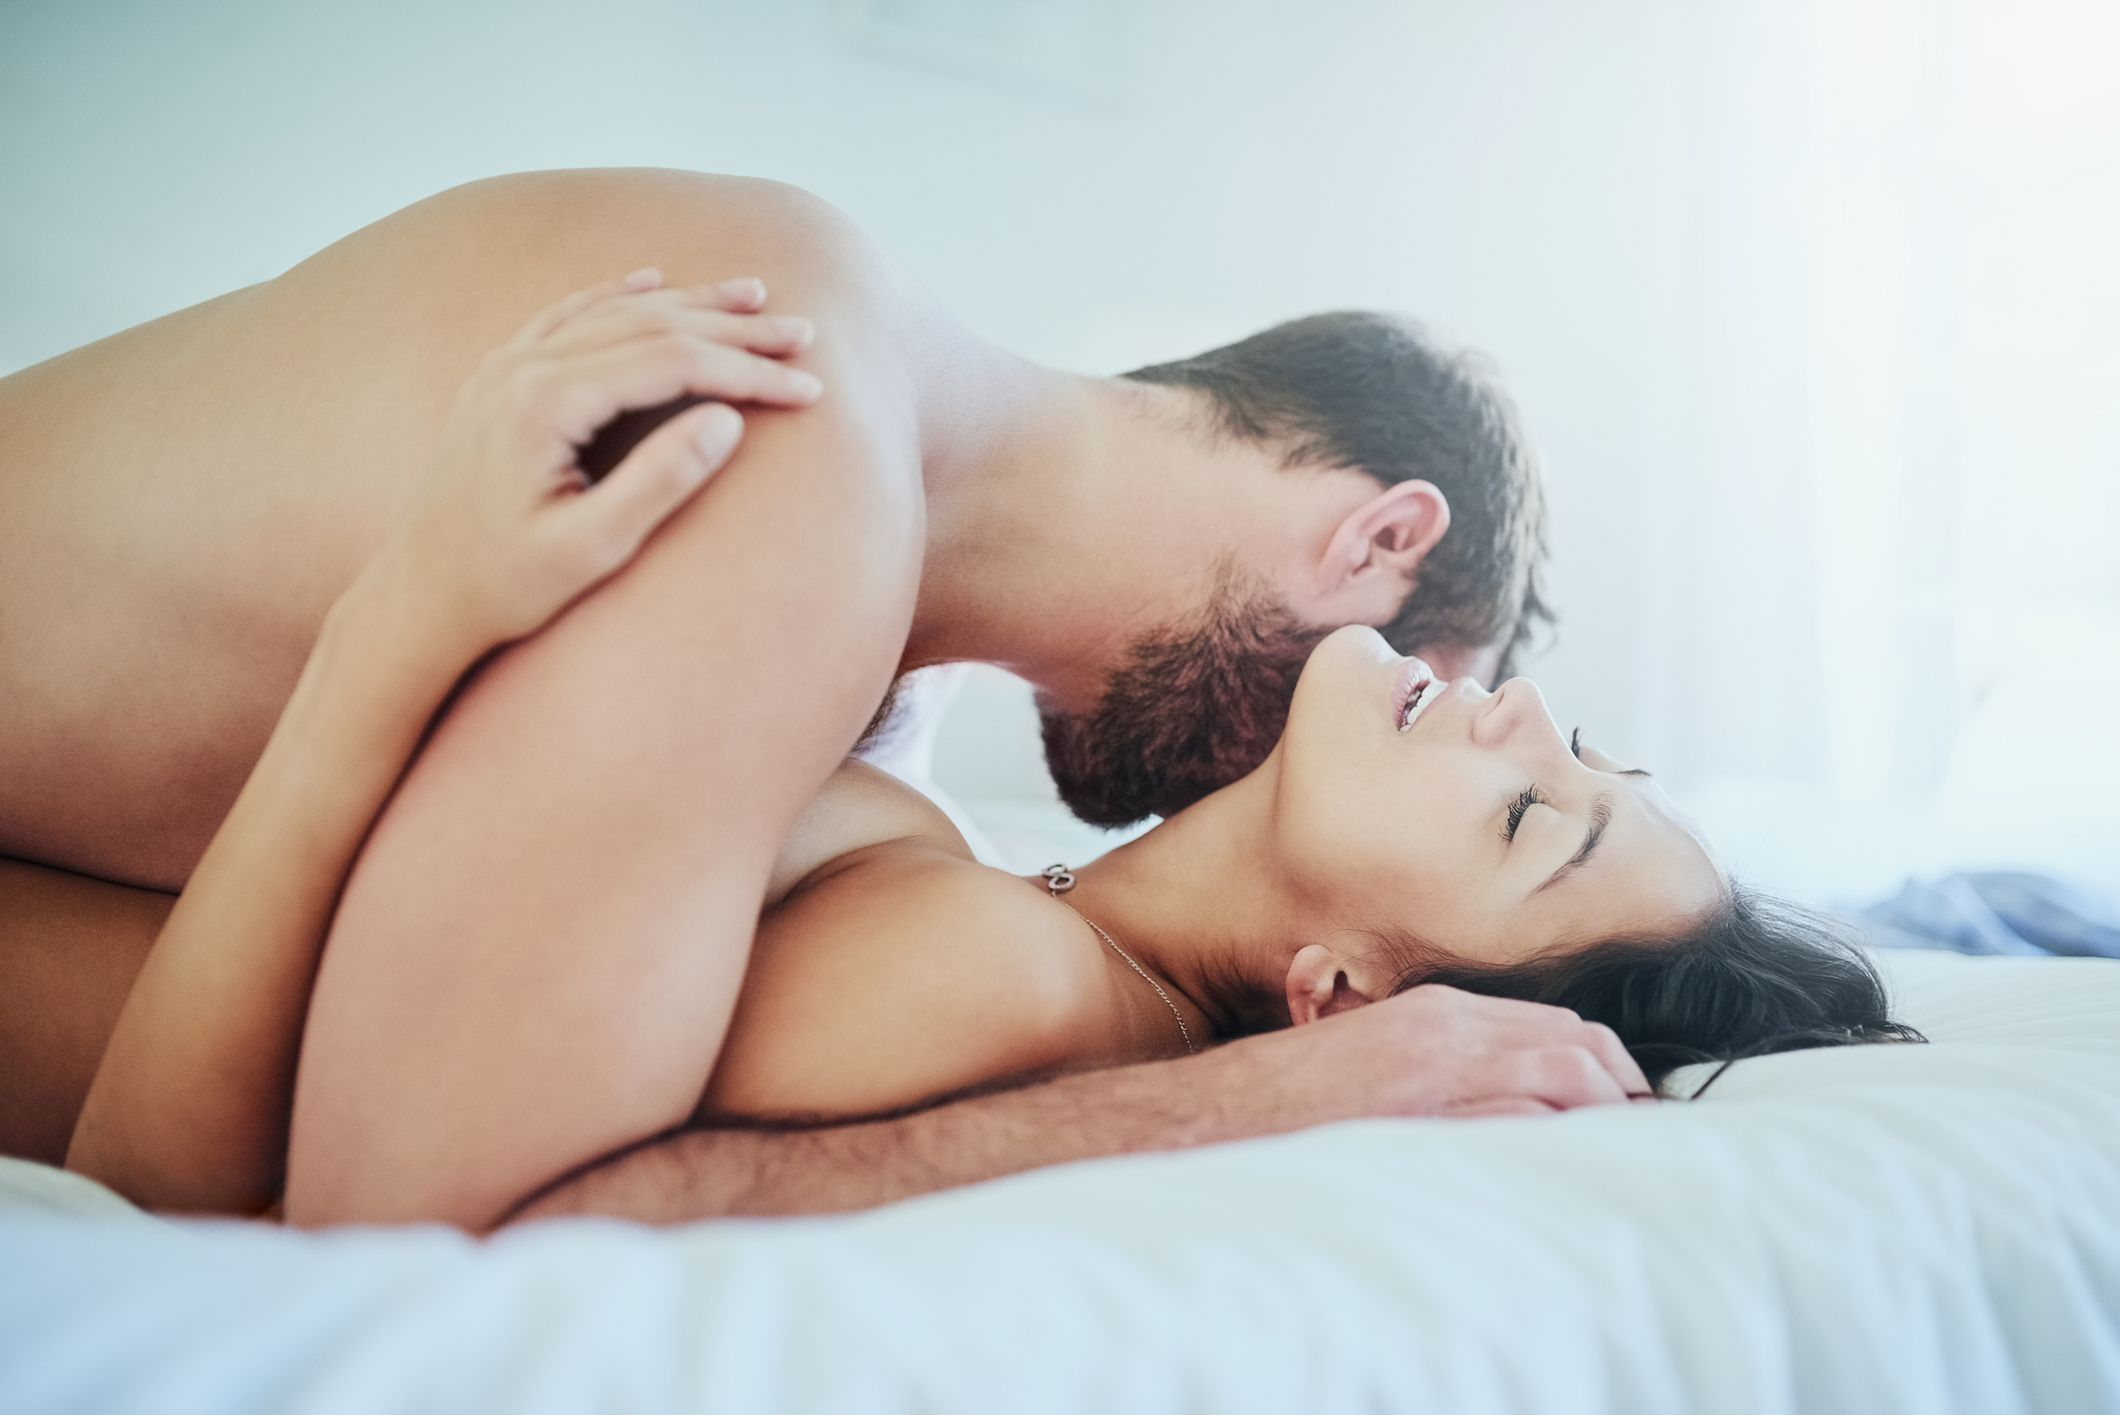 The Spread Eagle Sex Position Is Great for Going Deep. Here's How to Do It.